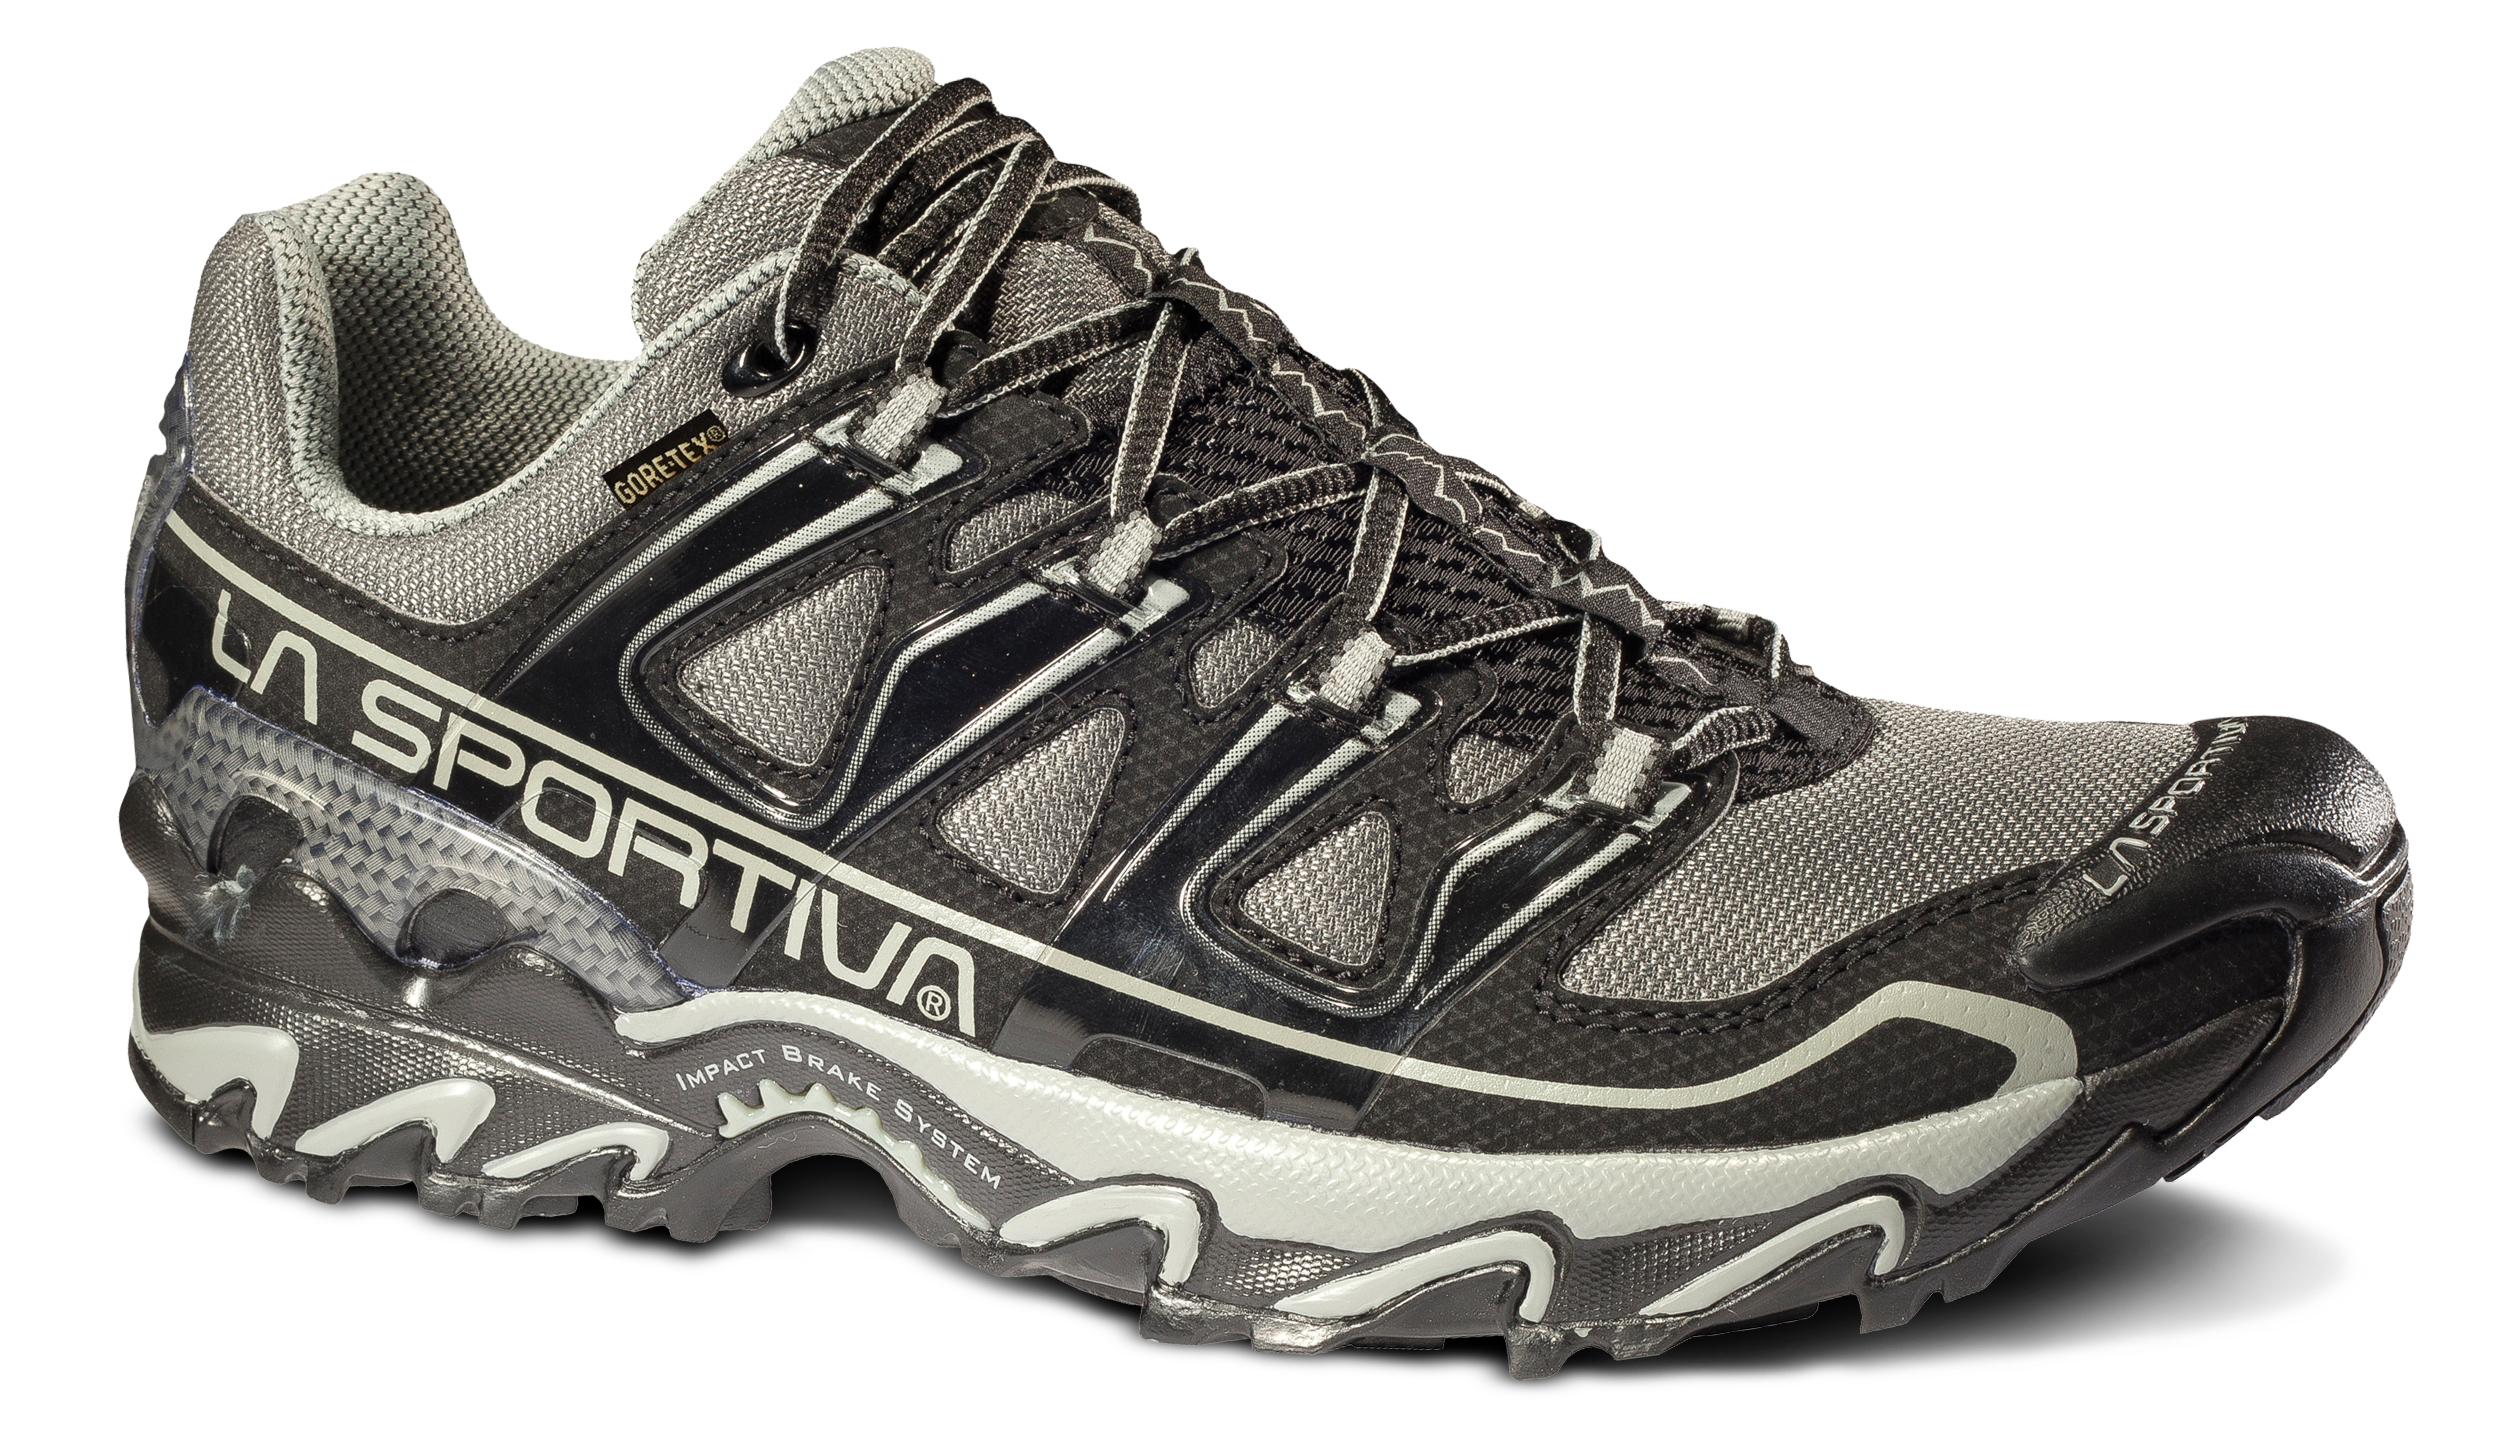 La Sportiva Raptor GTX